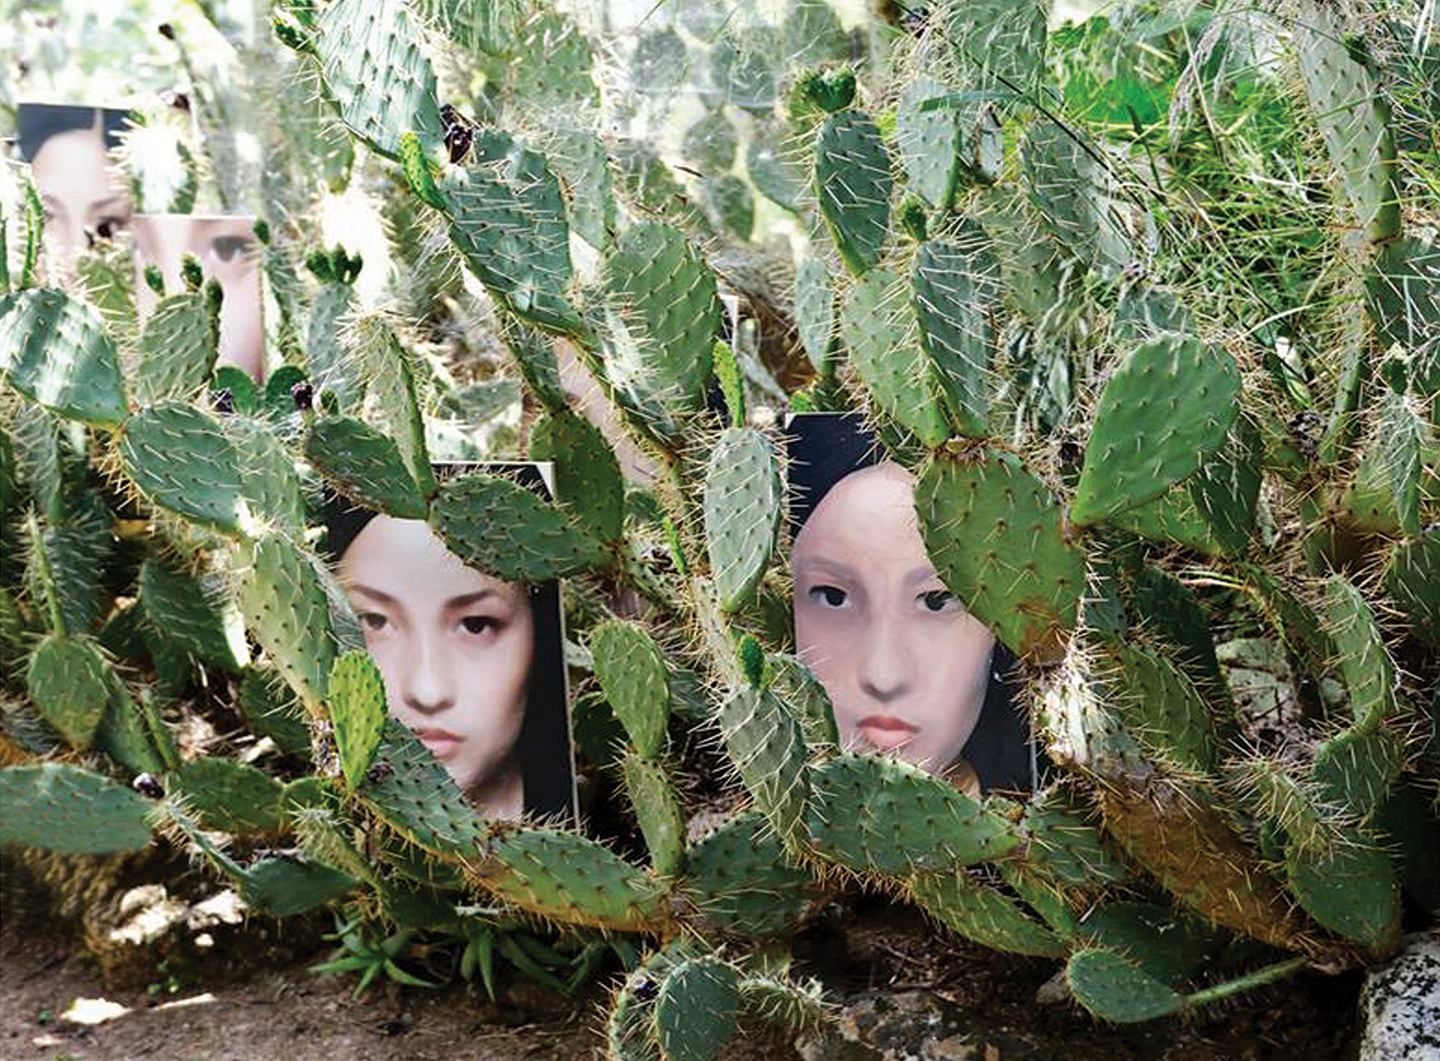 Guillermina De Gennaro, Neonature, installation, tempera on wood, 30x42cm, each, cactus, environmental dimensions, 2014.